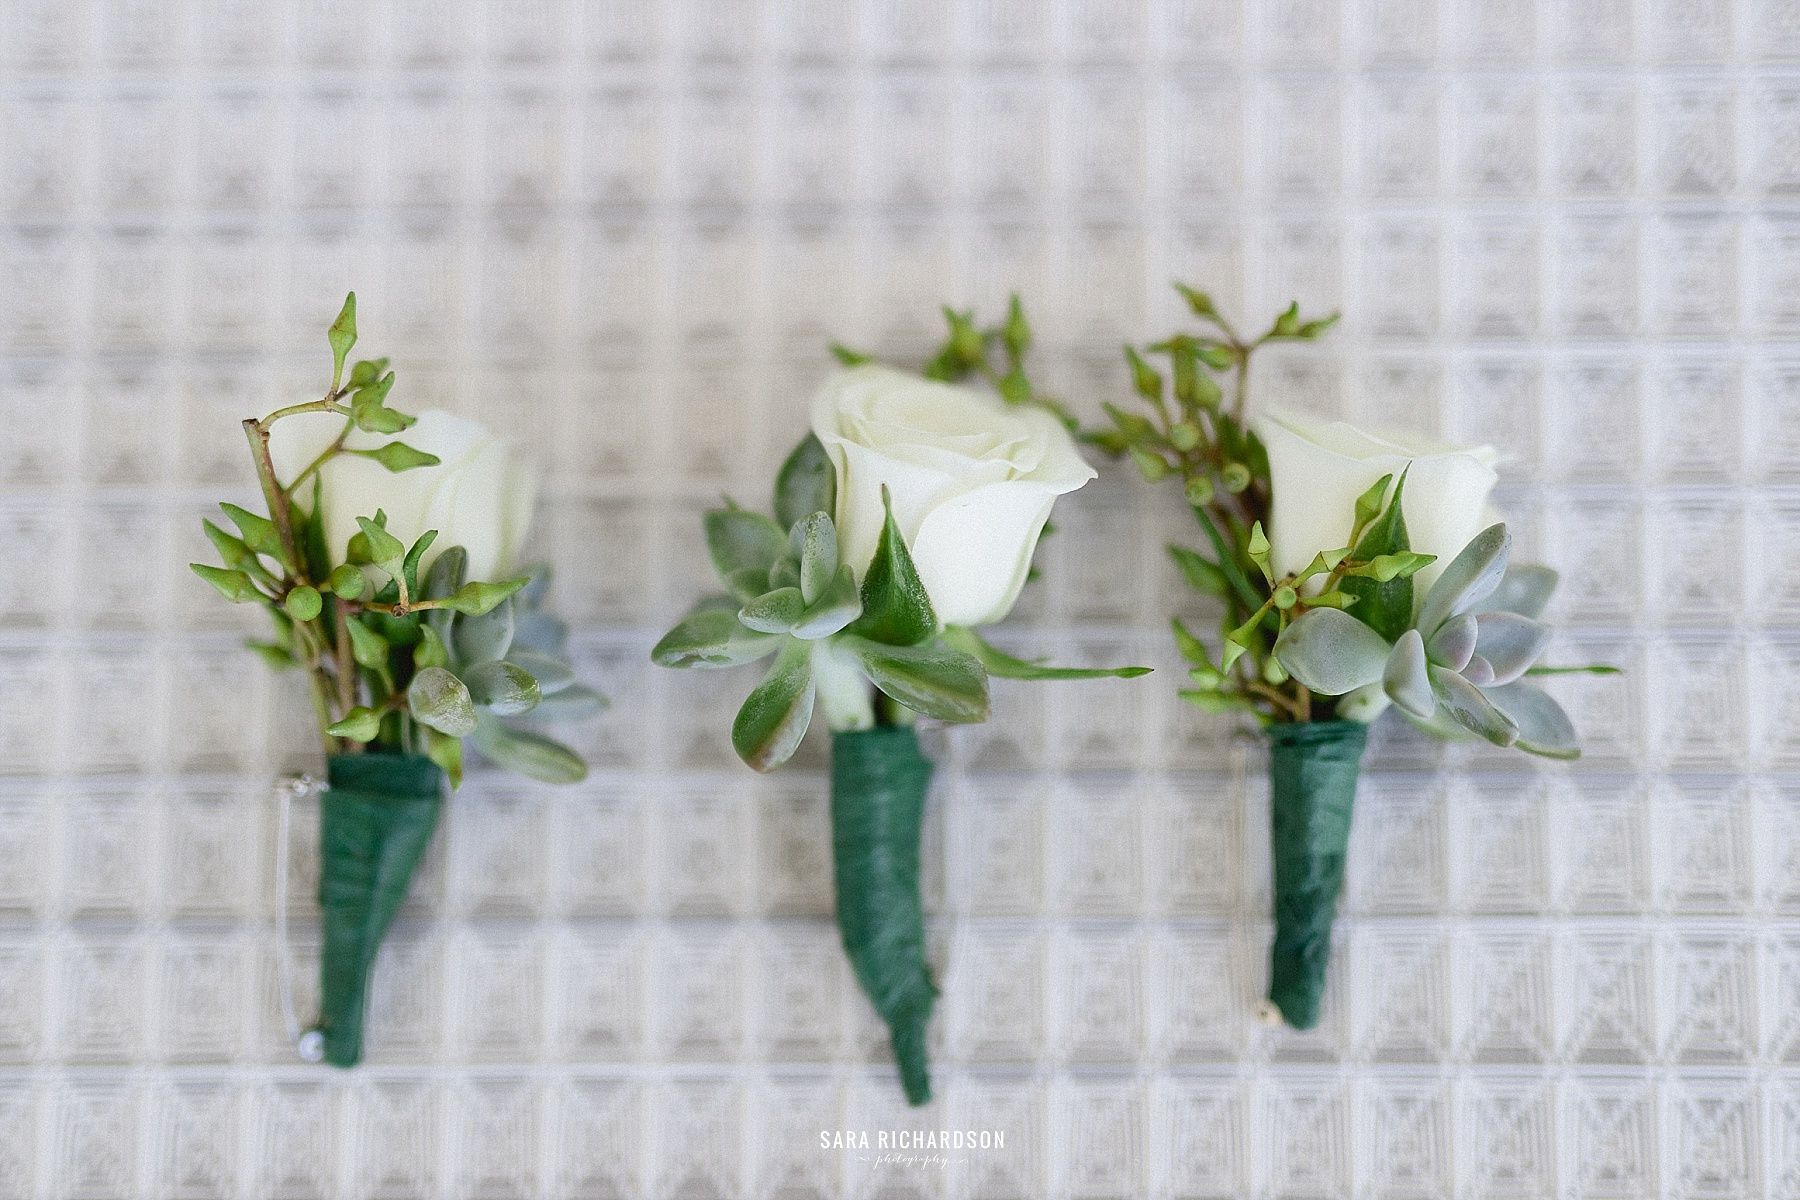 Perfectly cut mini roses for the Groom's Boutonniere. He looked so stunning with the white contrast and the blue in his suit. He looked flawless. Photography was done by Sara Richardson.